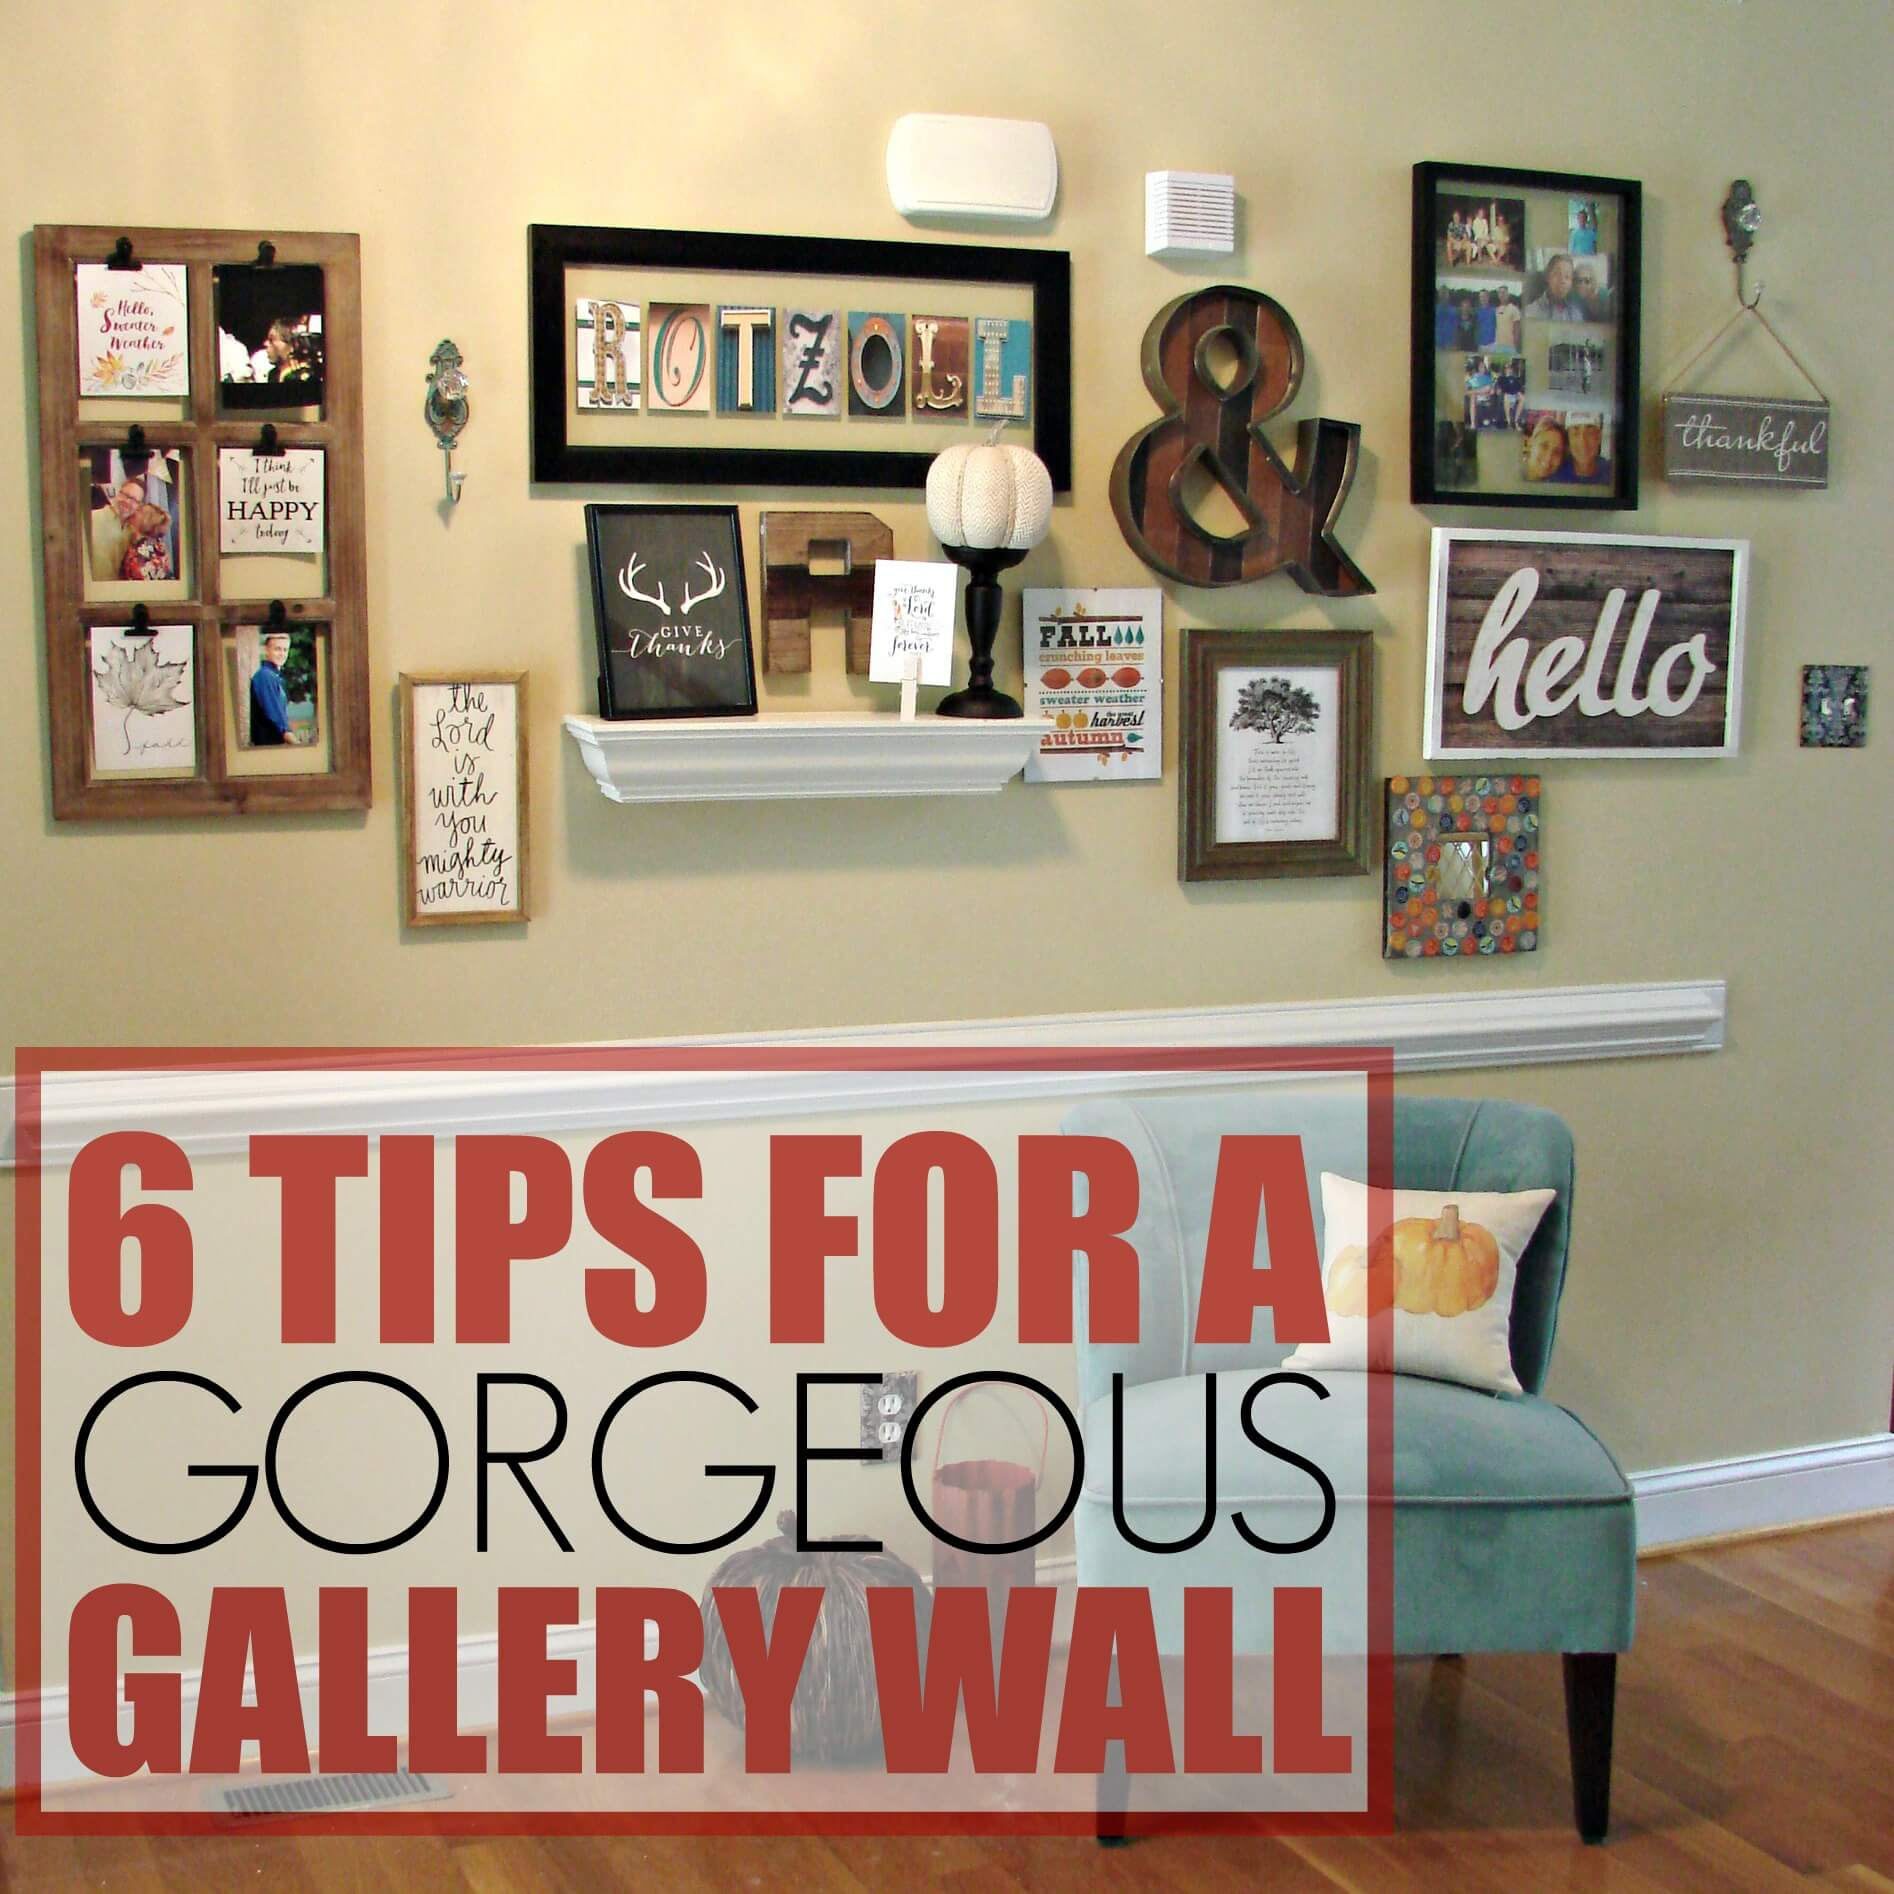 6 Steps to a Gorgeous Gallery Wall